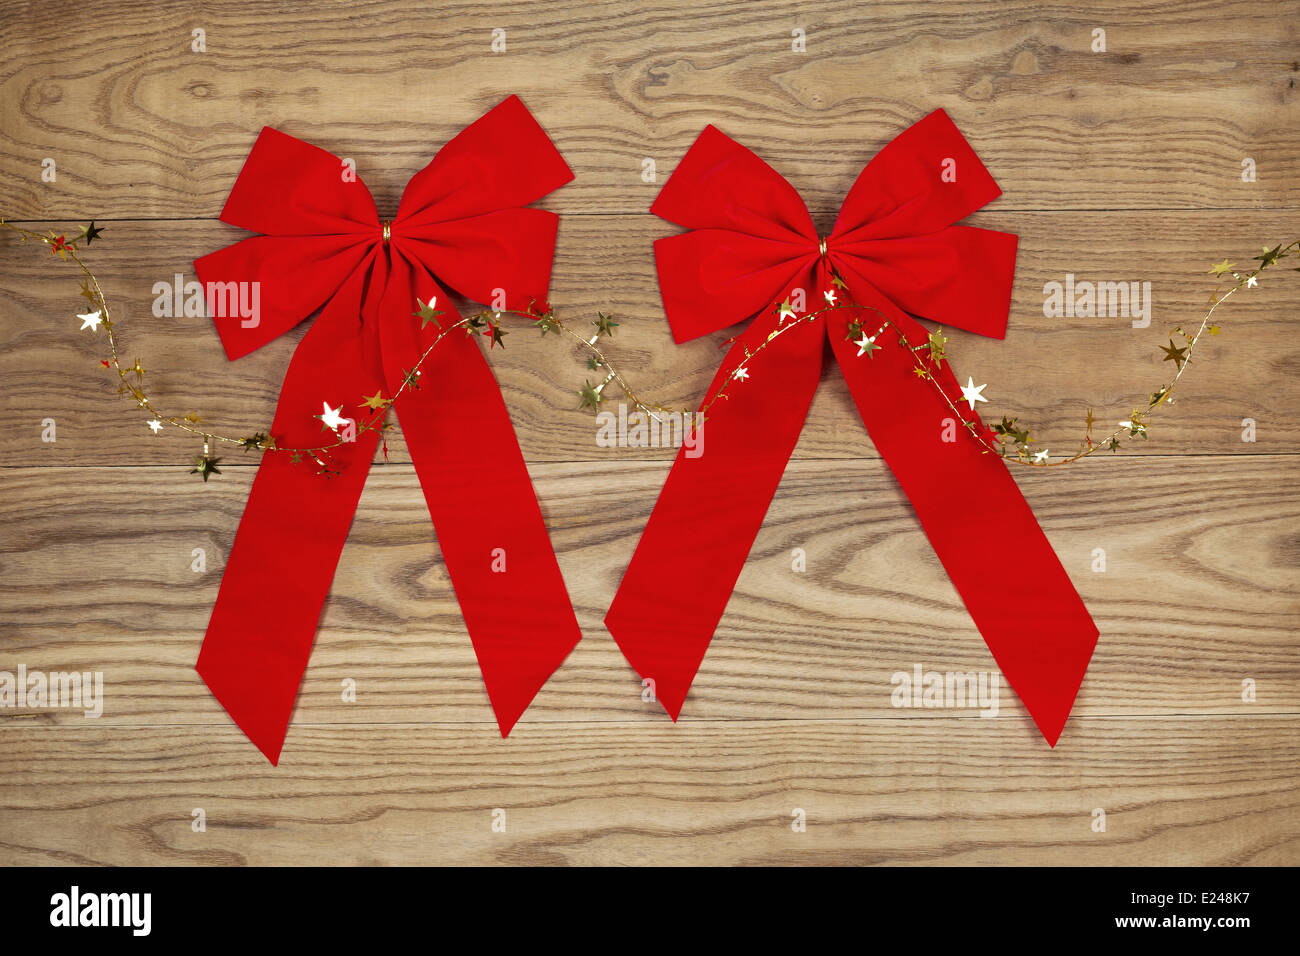 Overhead view of Christmas red bows and golden stars on string positioned on rustic wooden boards. - Stock Image